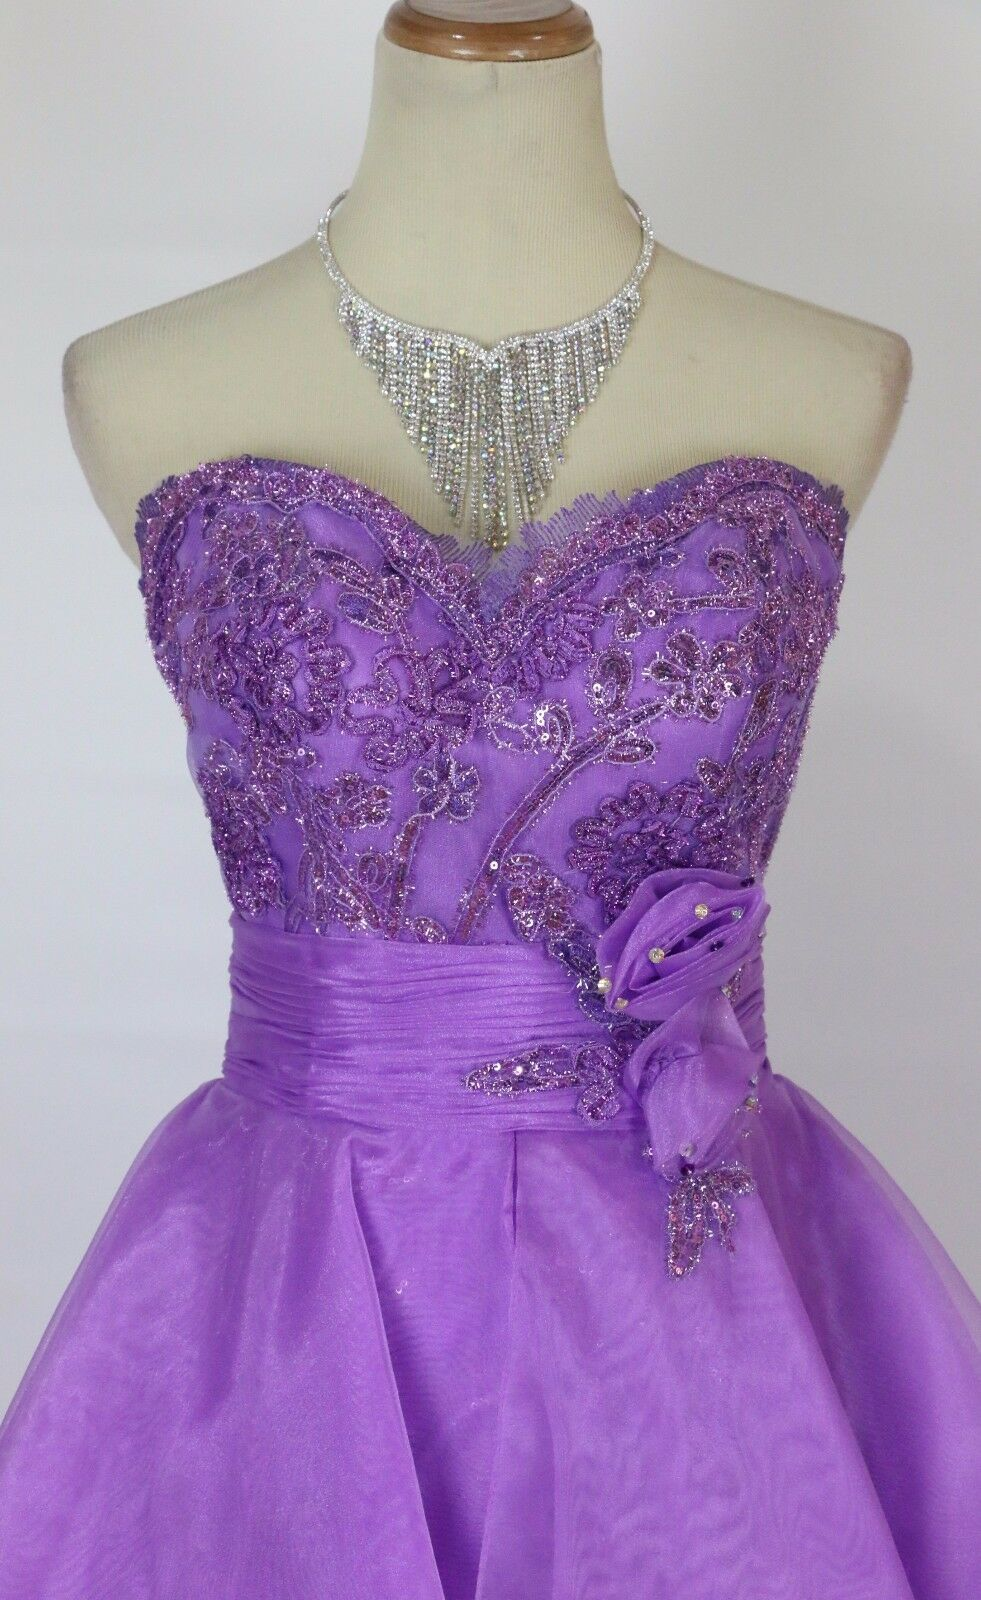 NEW Tony Bowls Size 4 Purple Strapless Ball Gown Prom Formal  Dress High Low